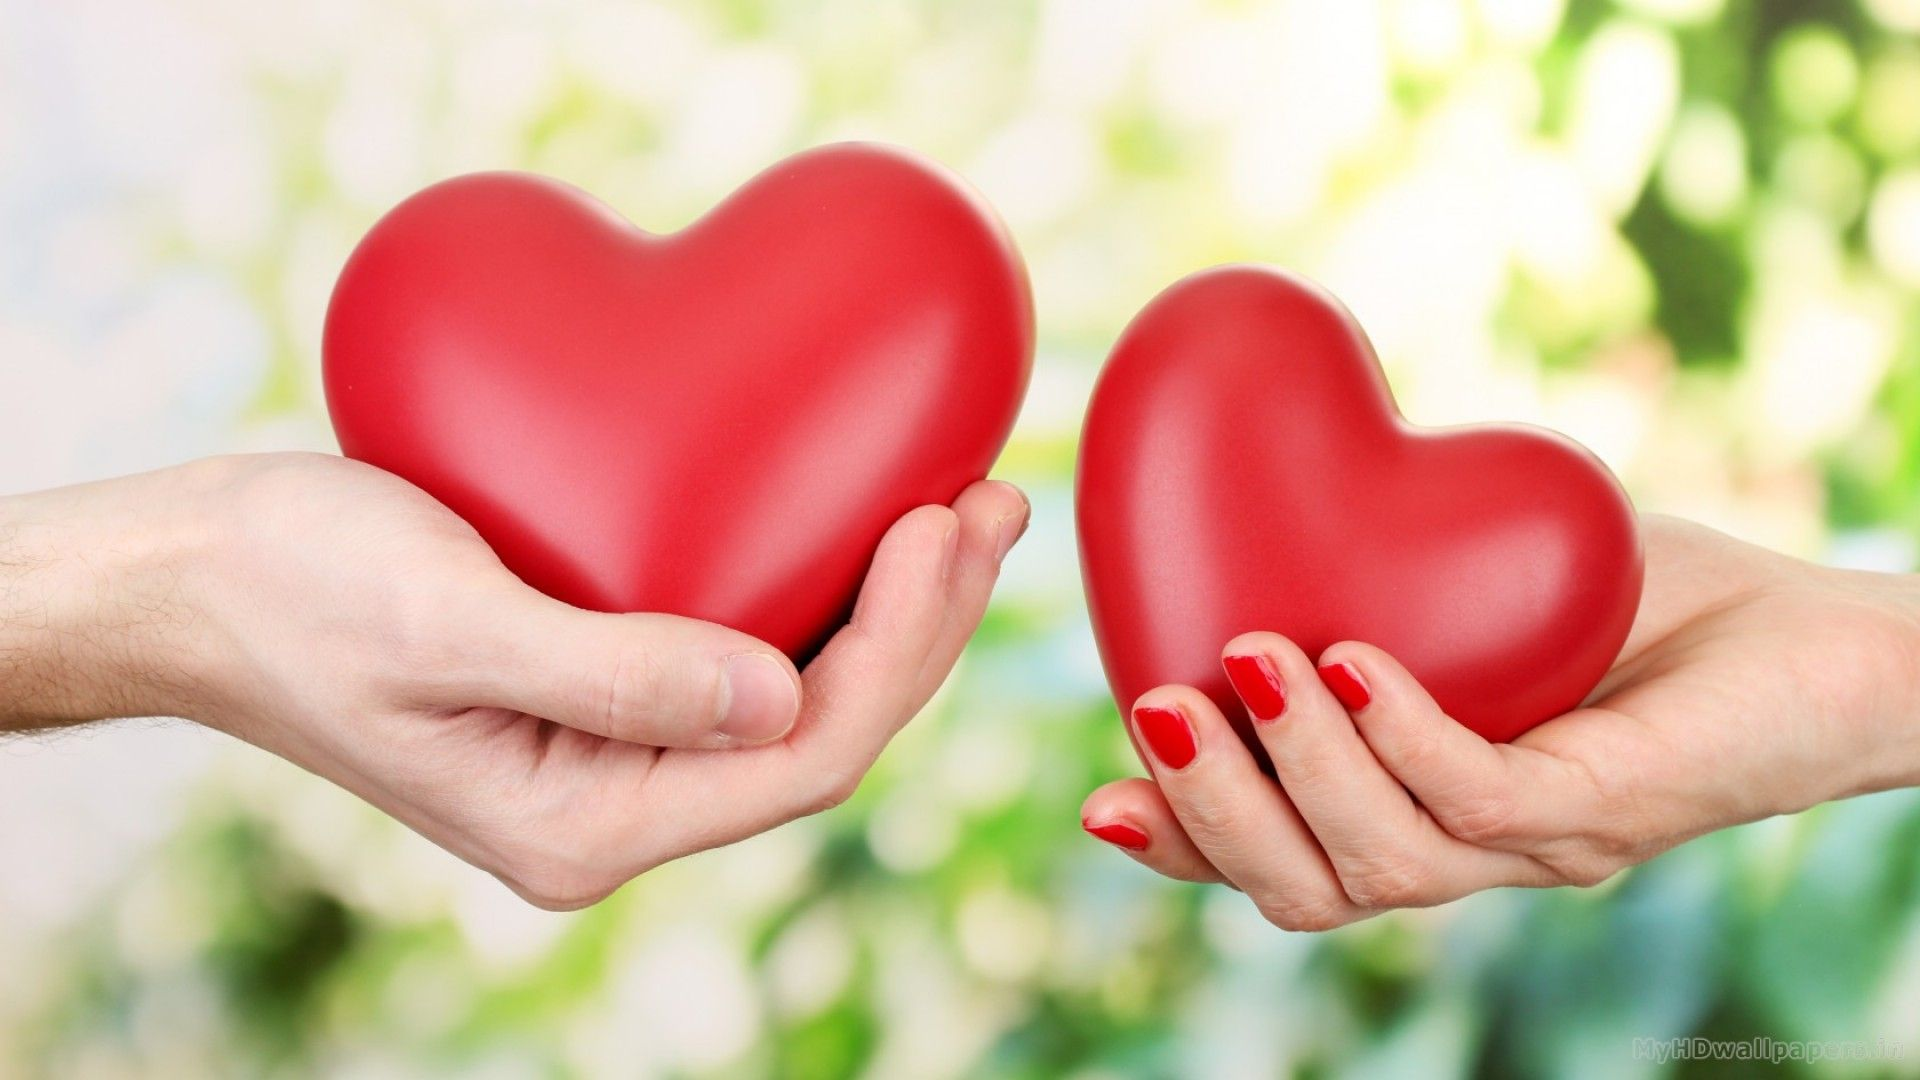 two heart love wallpapers download http://www.superwallpapers.in ...